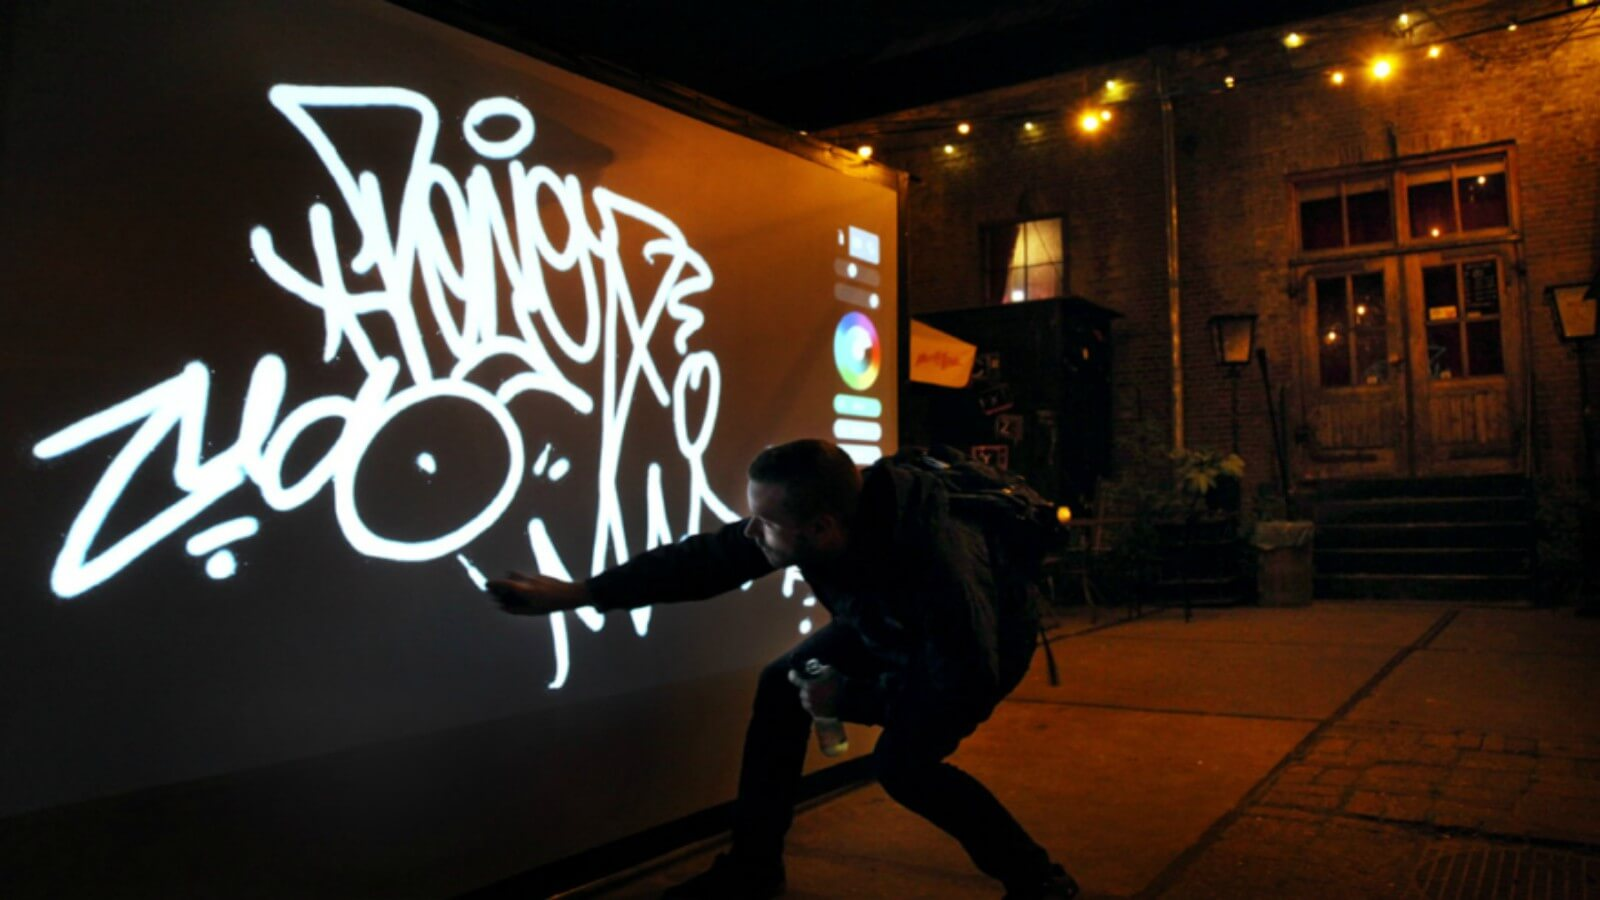 The 6th Urban Art Festival in Amsterdam comes to an end